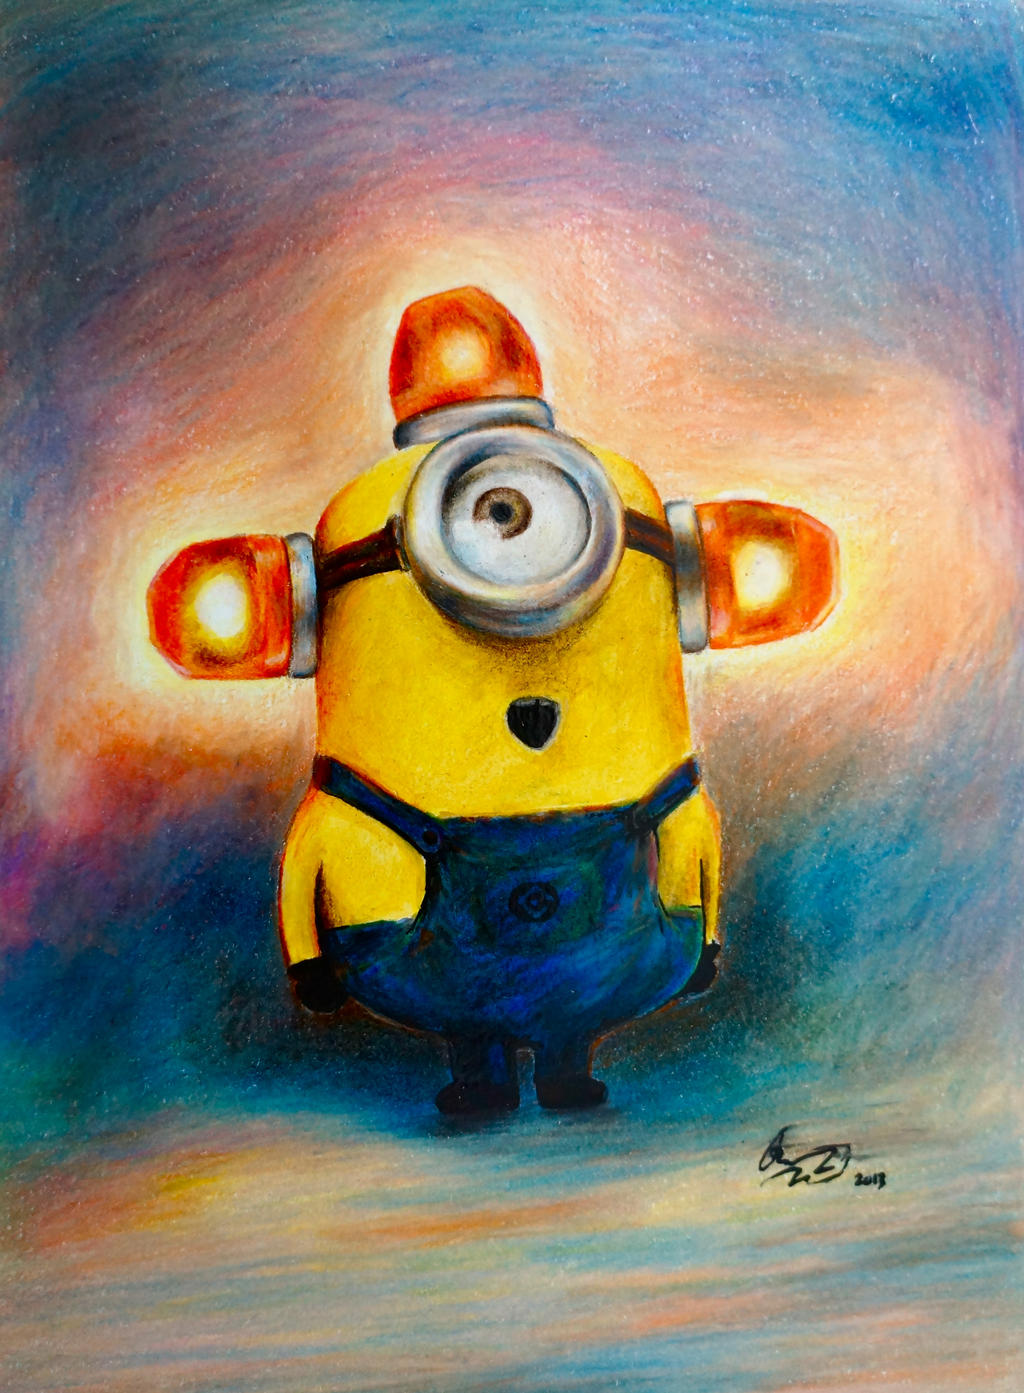 Minion: Carl, Beedoo Beedoo Beedo by qqClare on DeviantArt